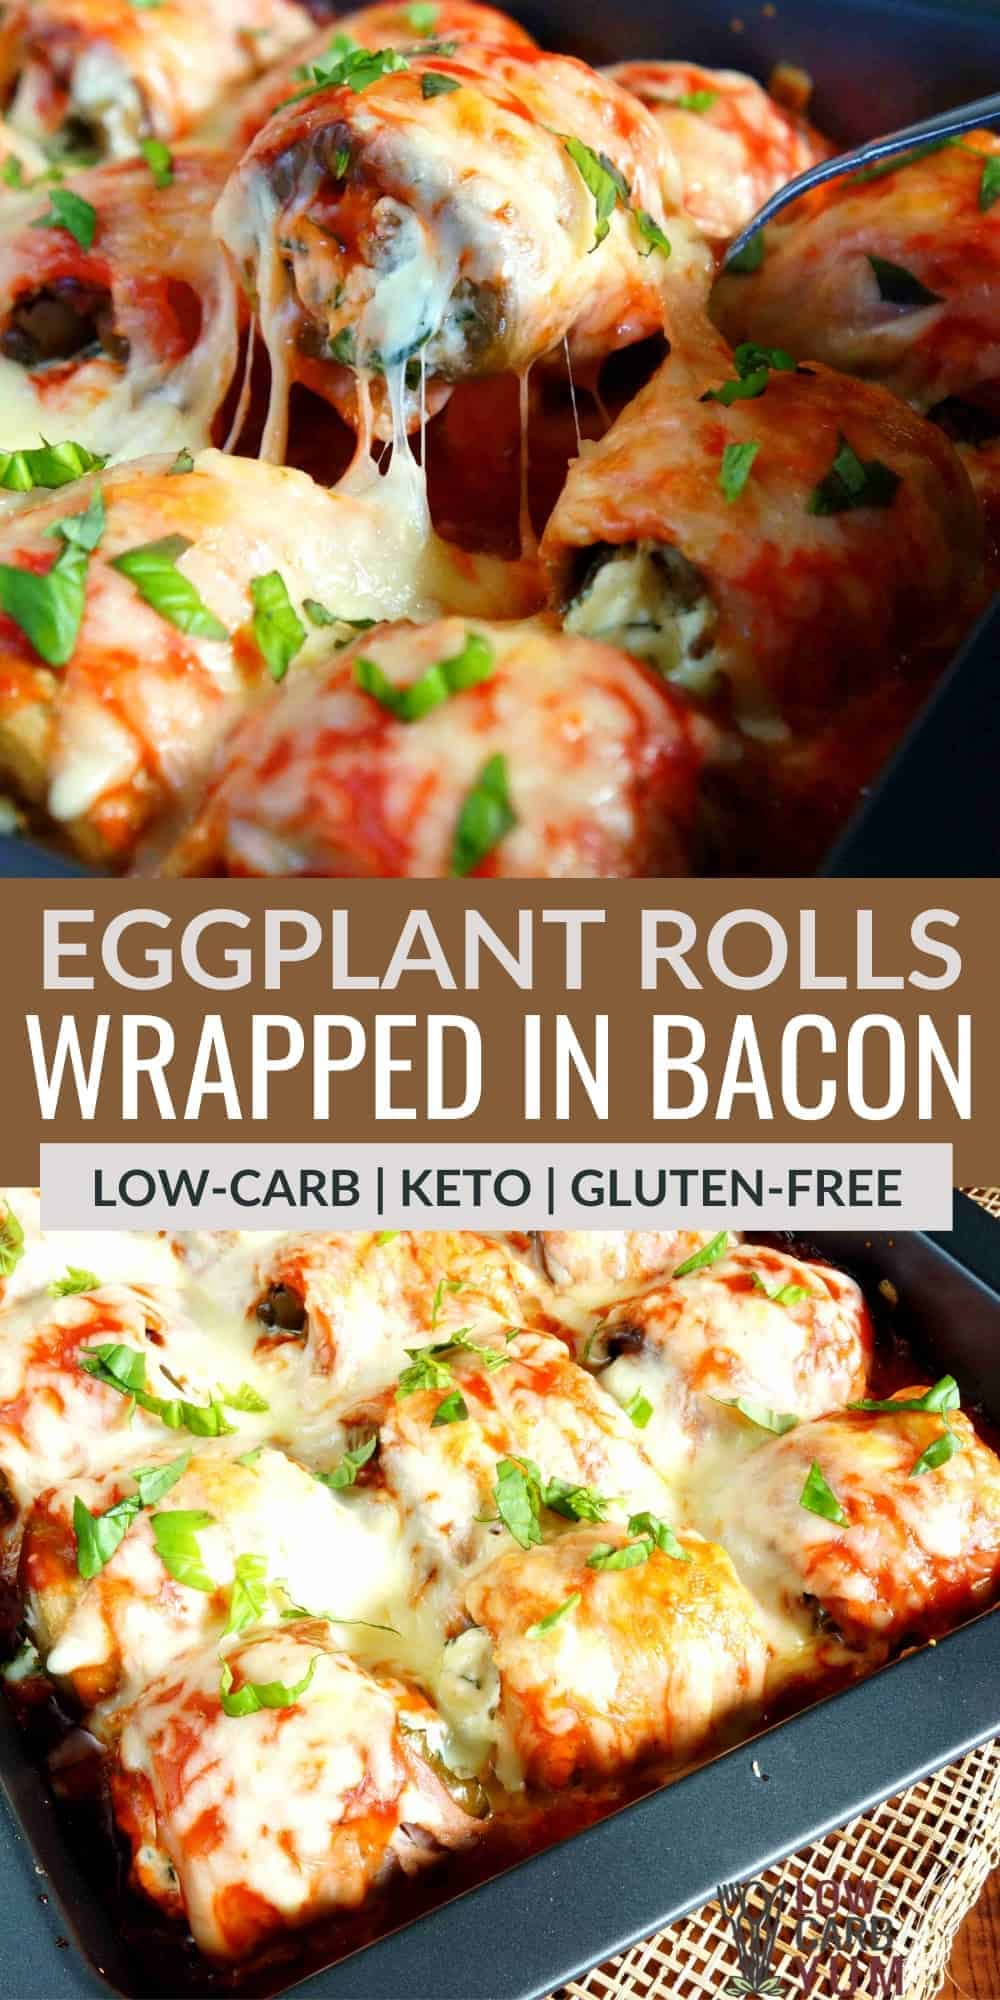 eggplant rolls wrapped in bacon pinterest image